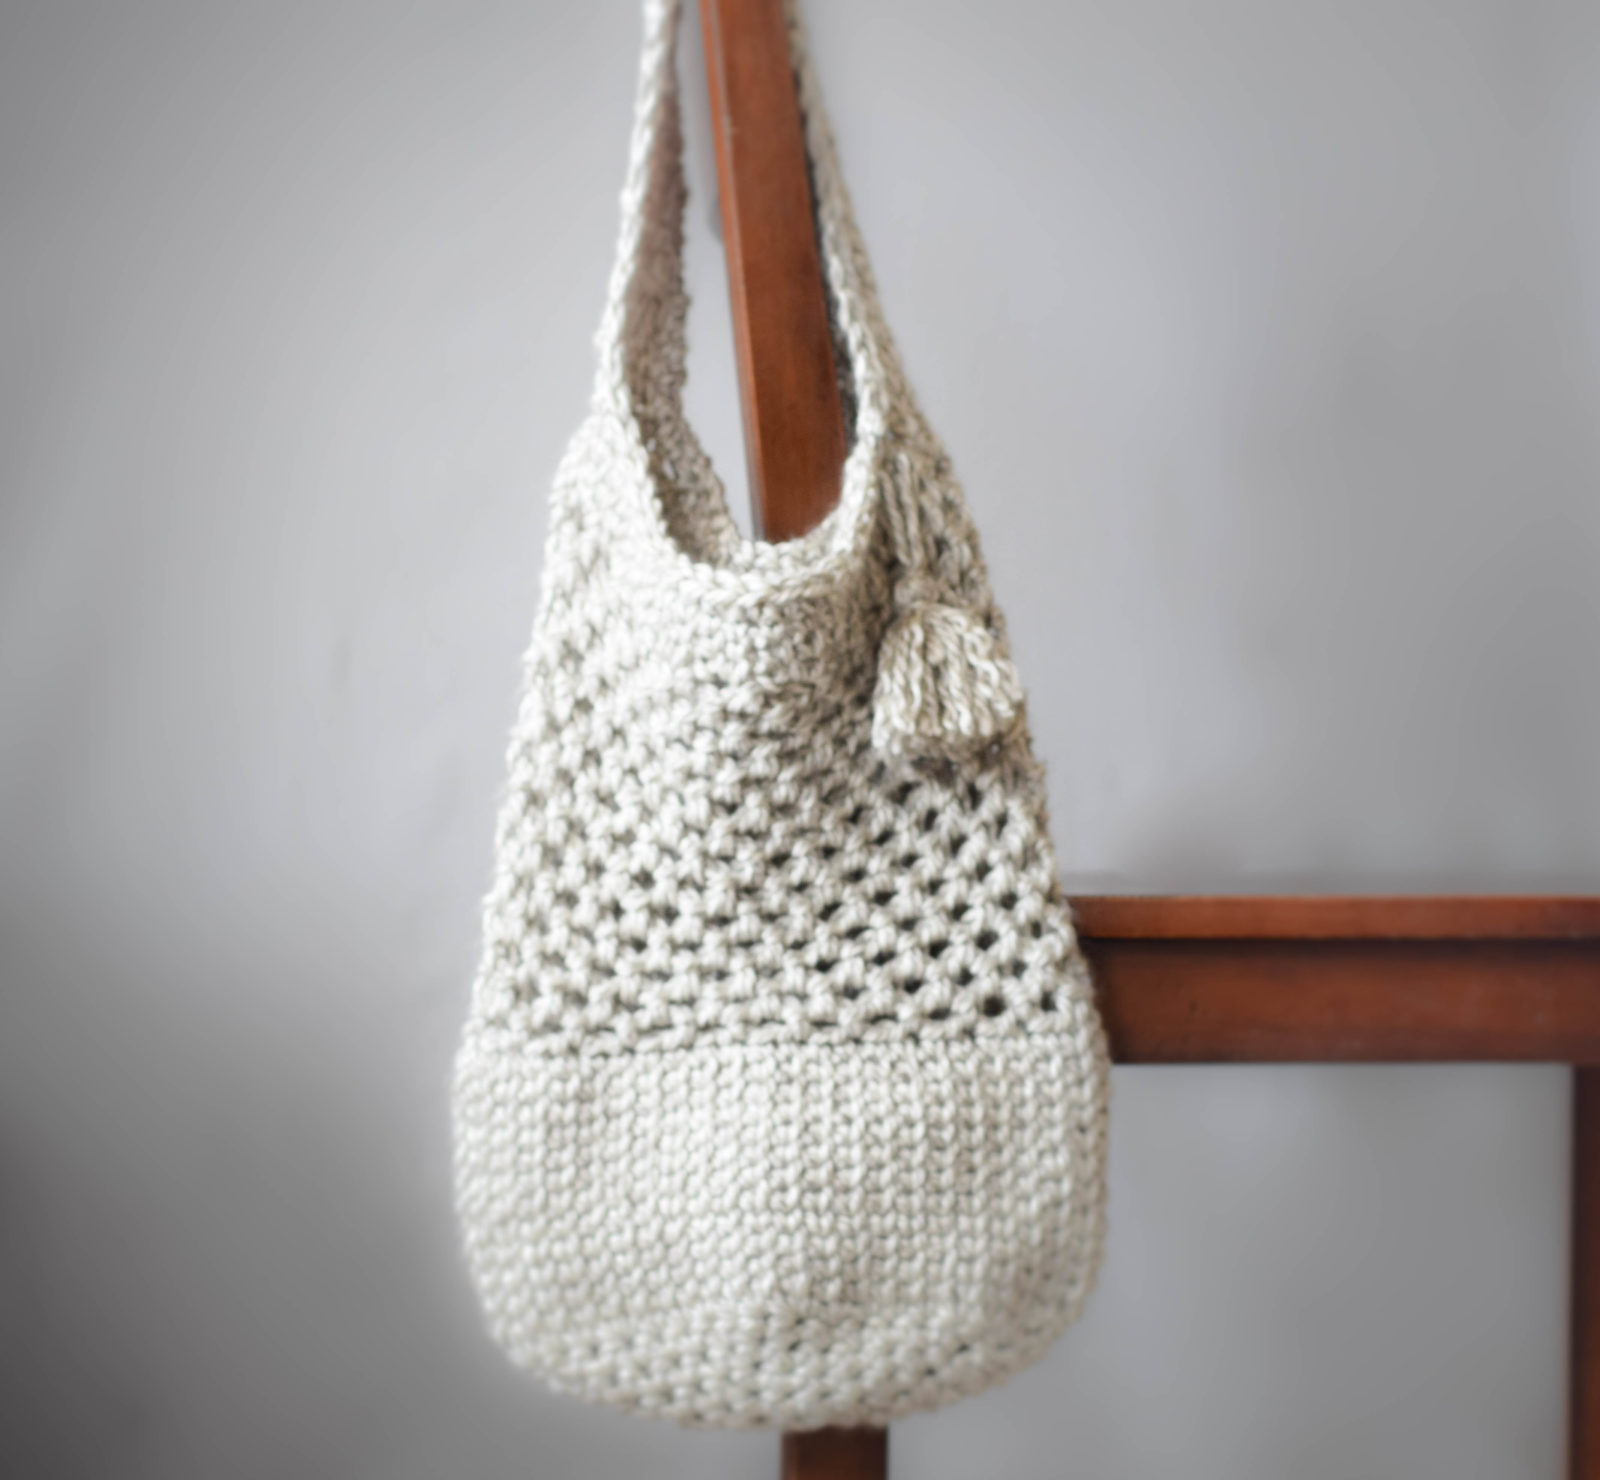 Crochet Patterns For Tote Bags : Manhattan Market Tote - Crochet Pattern - Mama In A Stitch